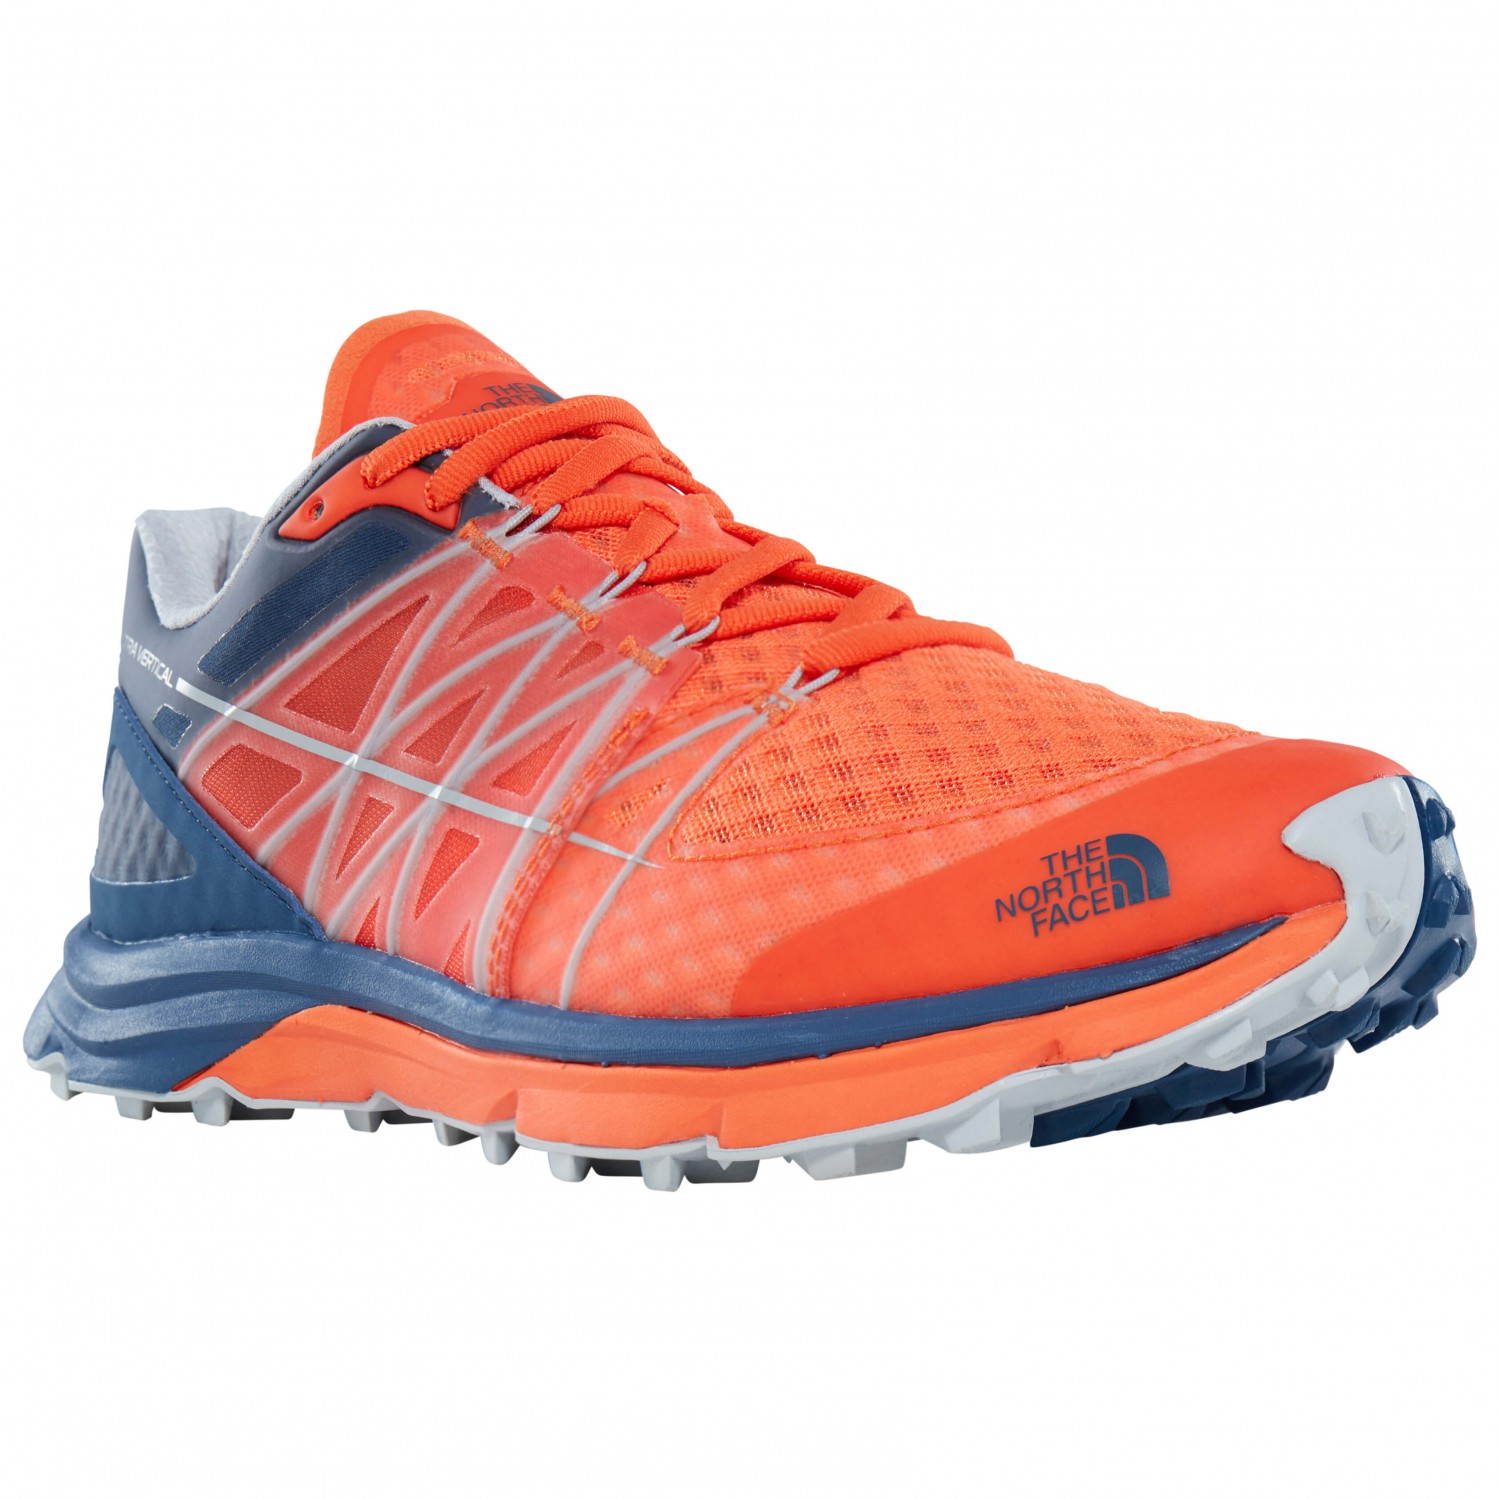 The North Face Ultra Vertical - Trail Running Shoes Men's